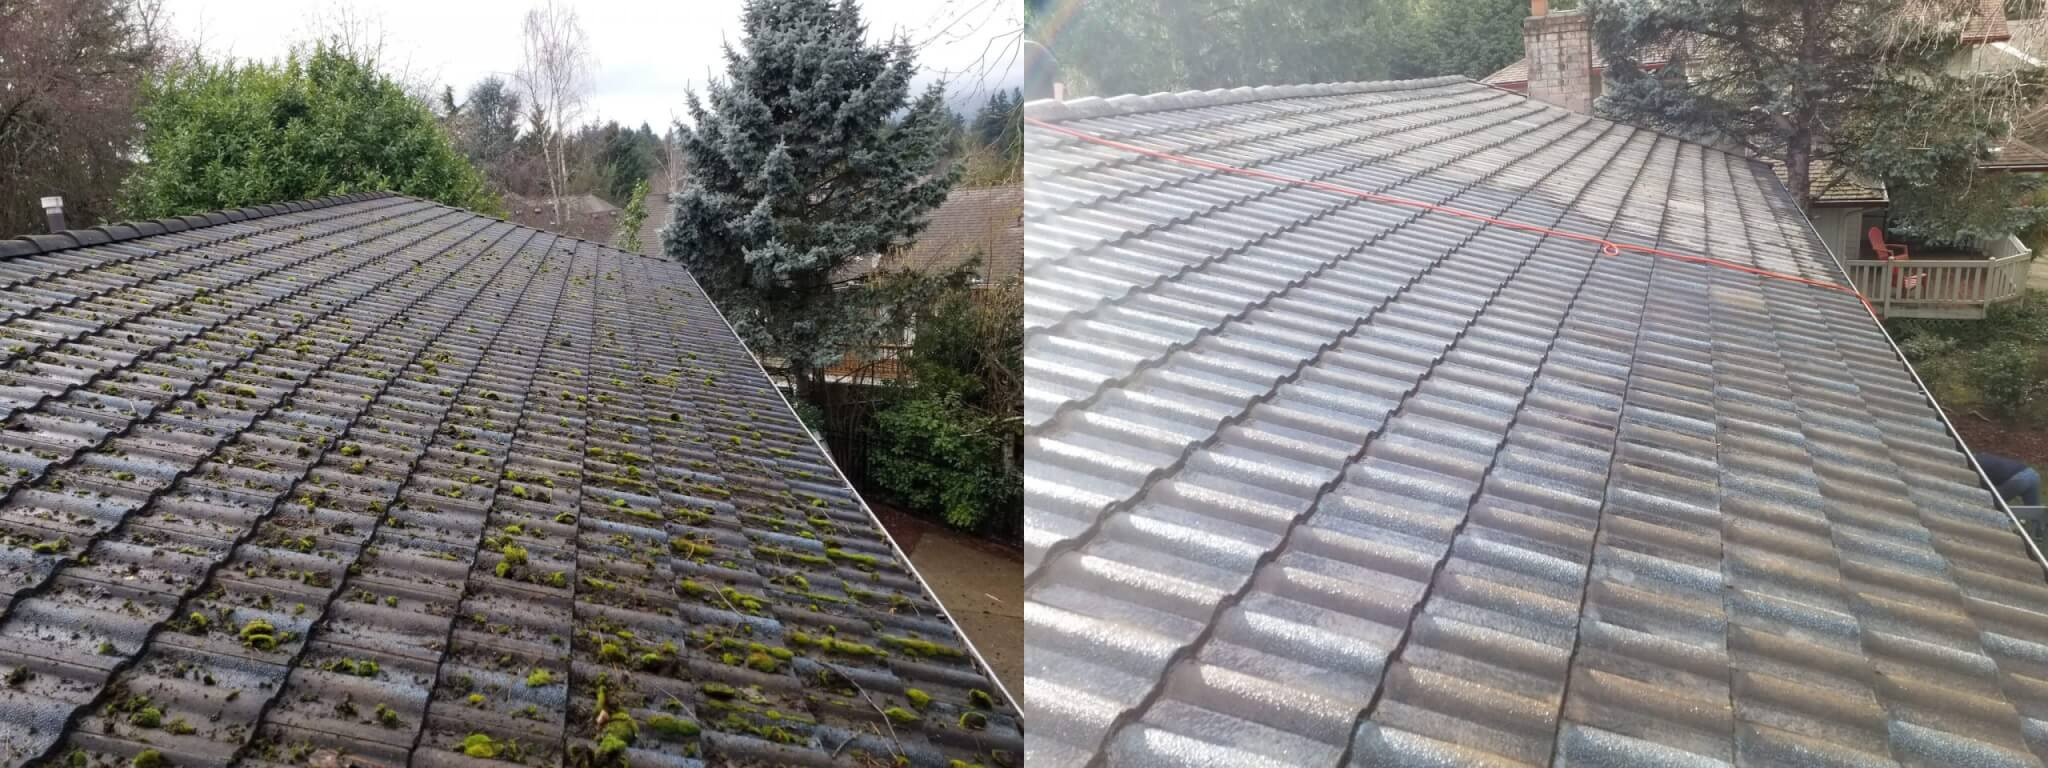 Roof Moss Removal Moss Treatments Roof Care Salem Oregon